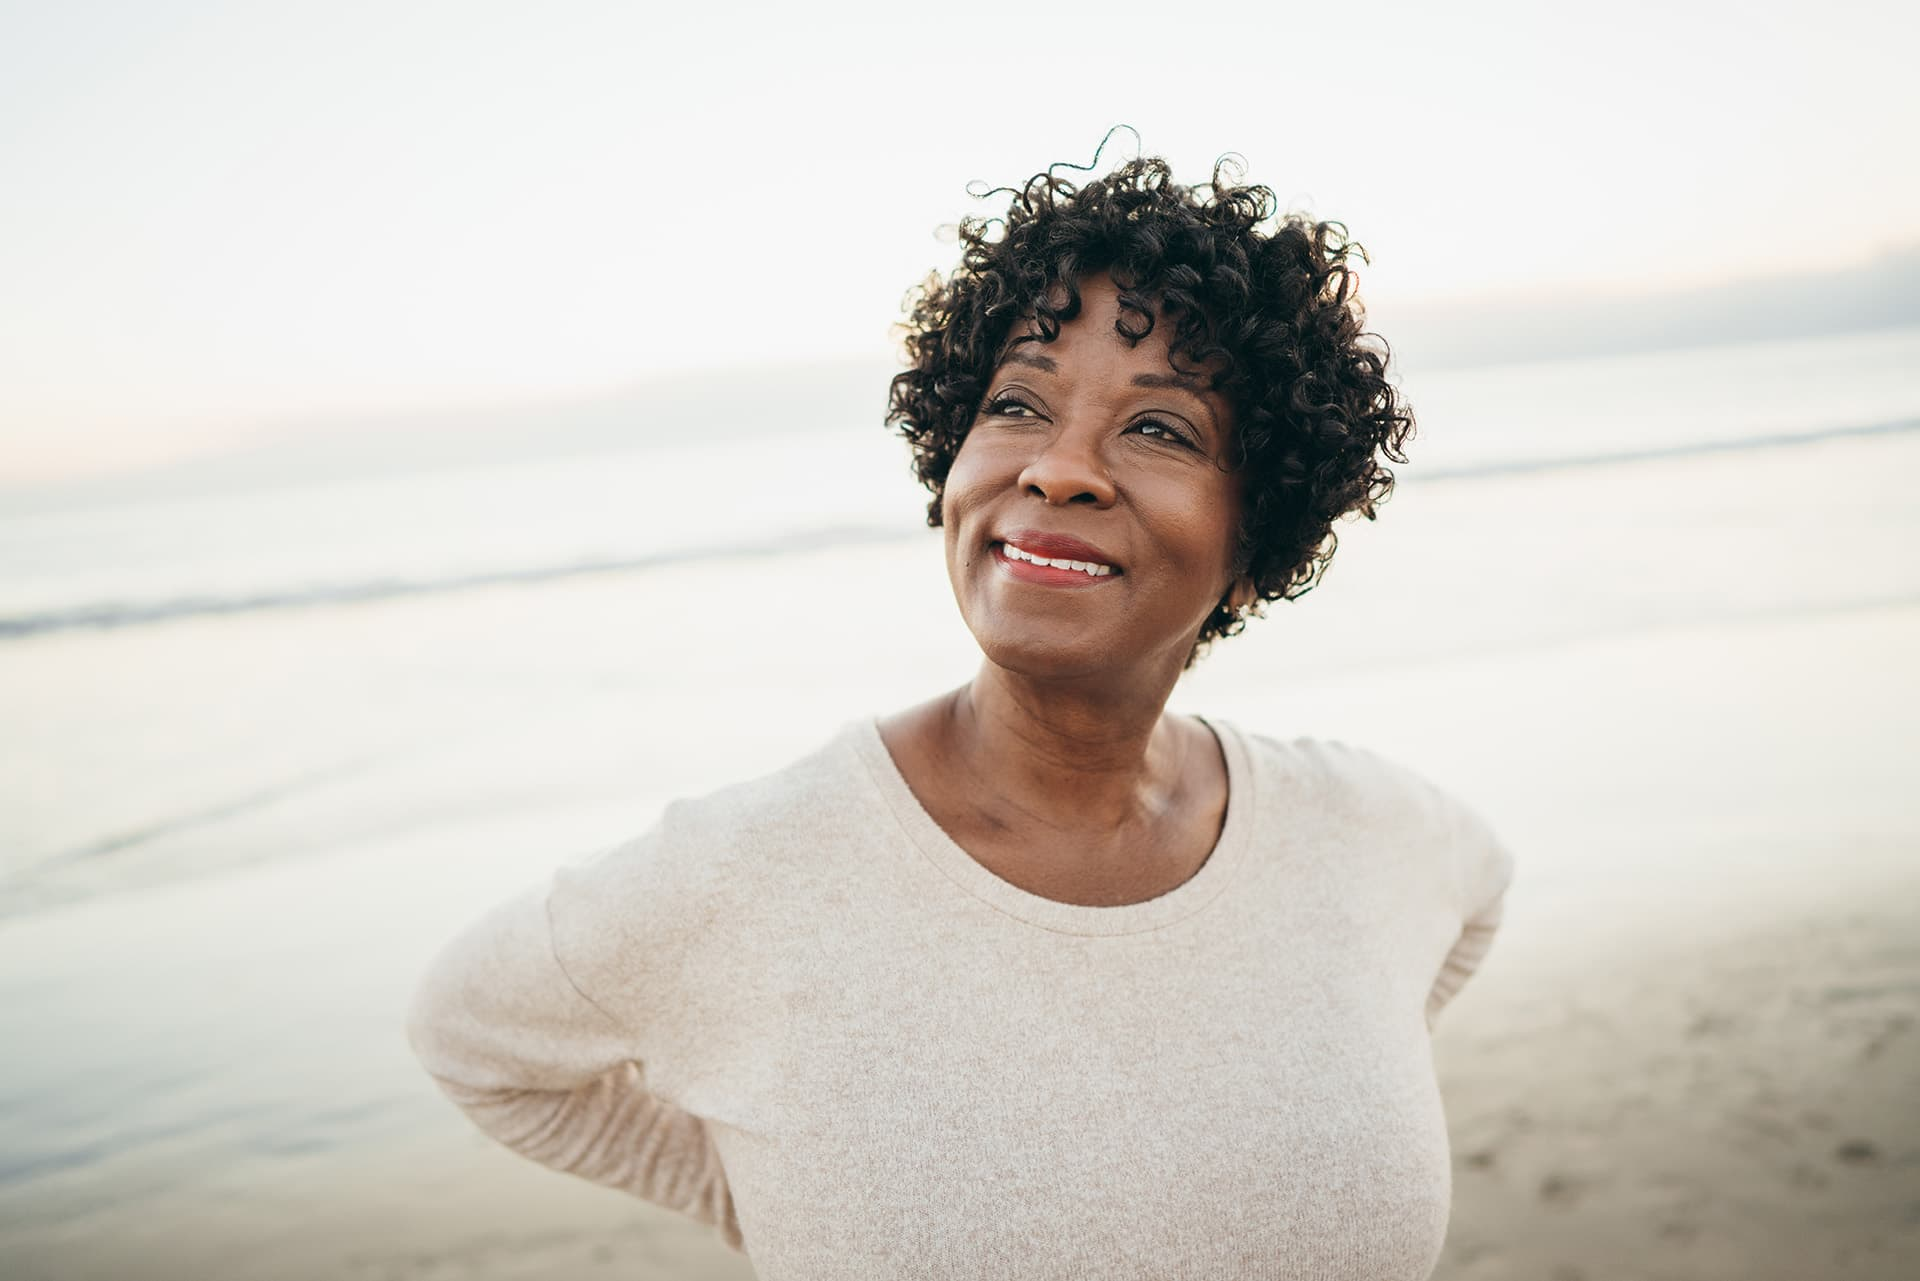 Woman with whole life insurance smiling on a beach